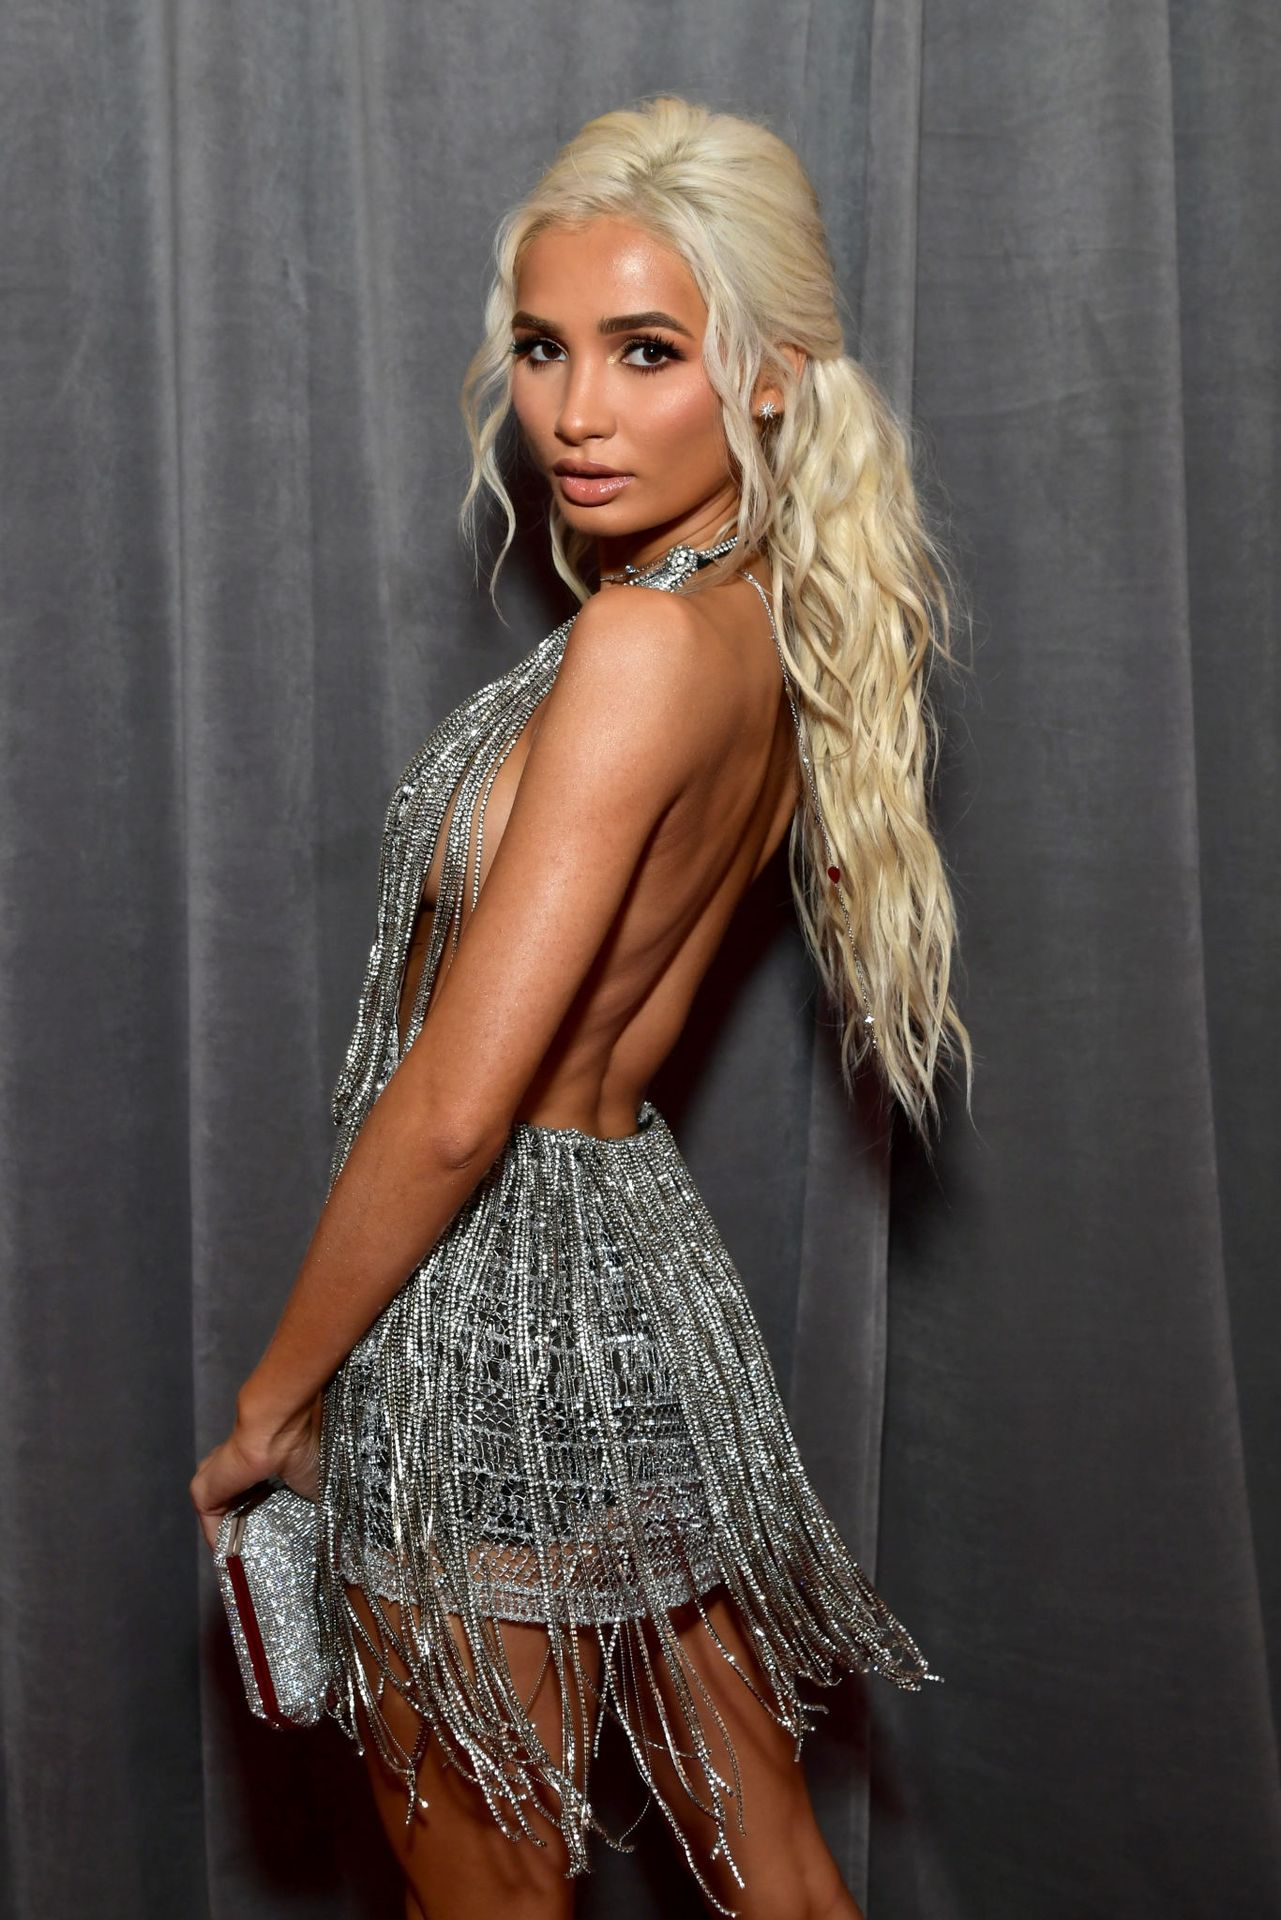 Pia Mia Perez Shows Her Sideboob At The 62nd Annual Grammy Awards 0025